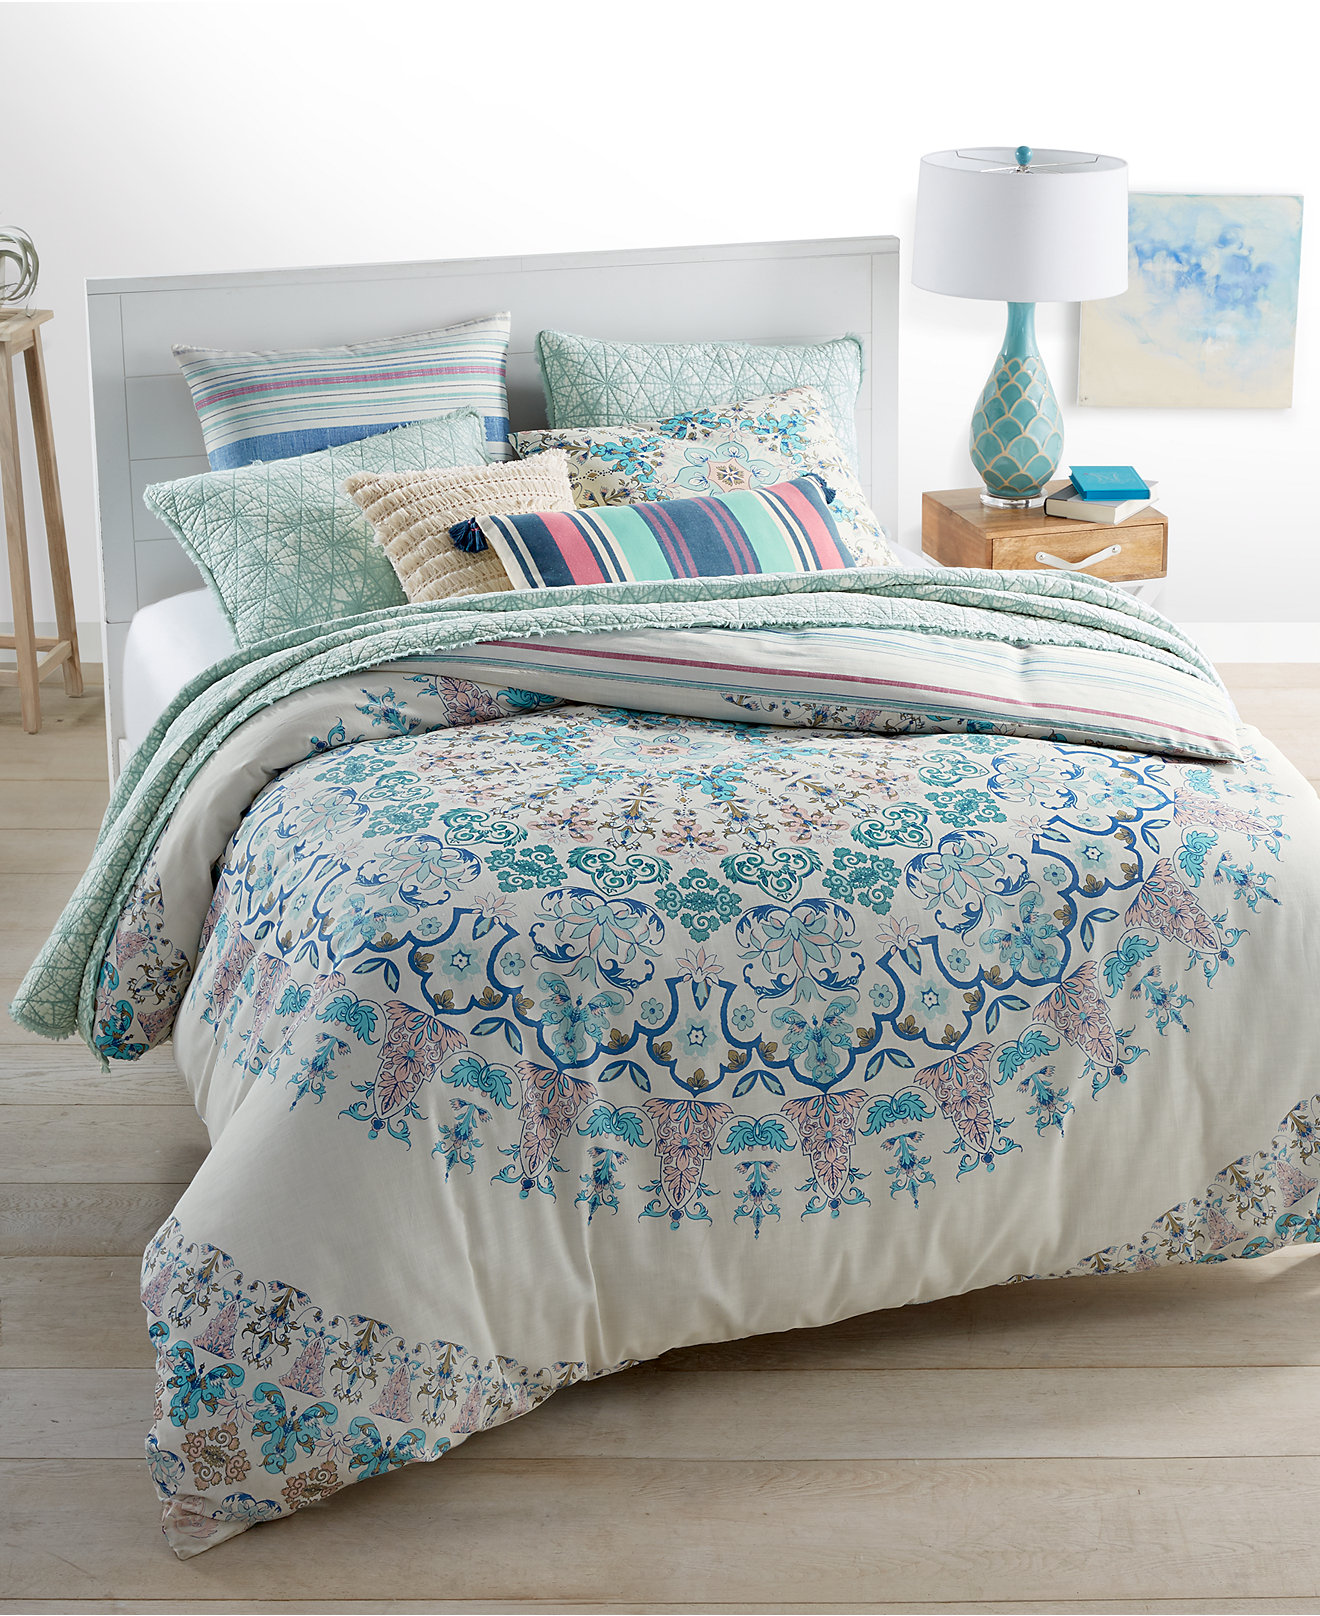 Full Moon Reversible Bedding Collection Everything Turquoise